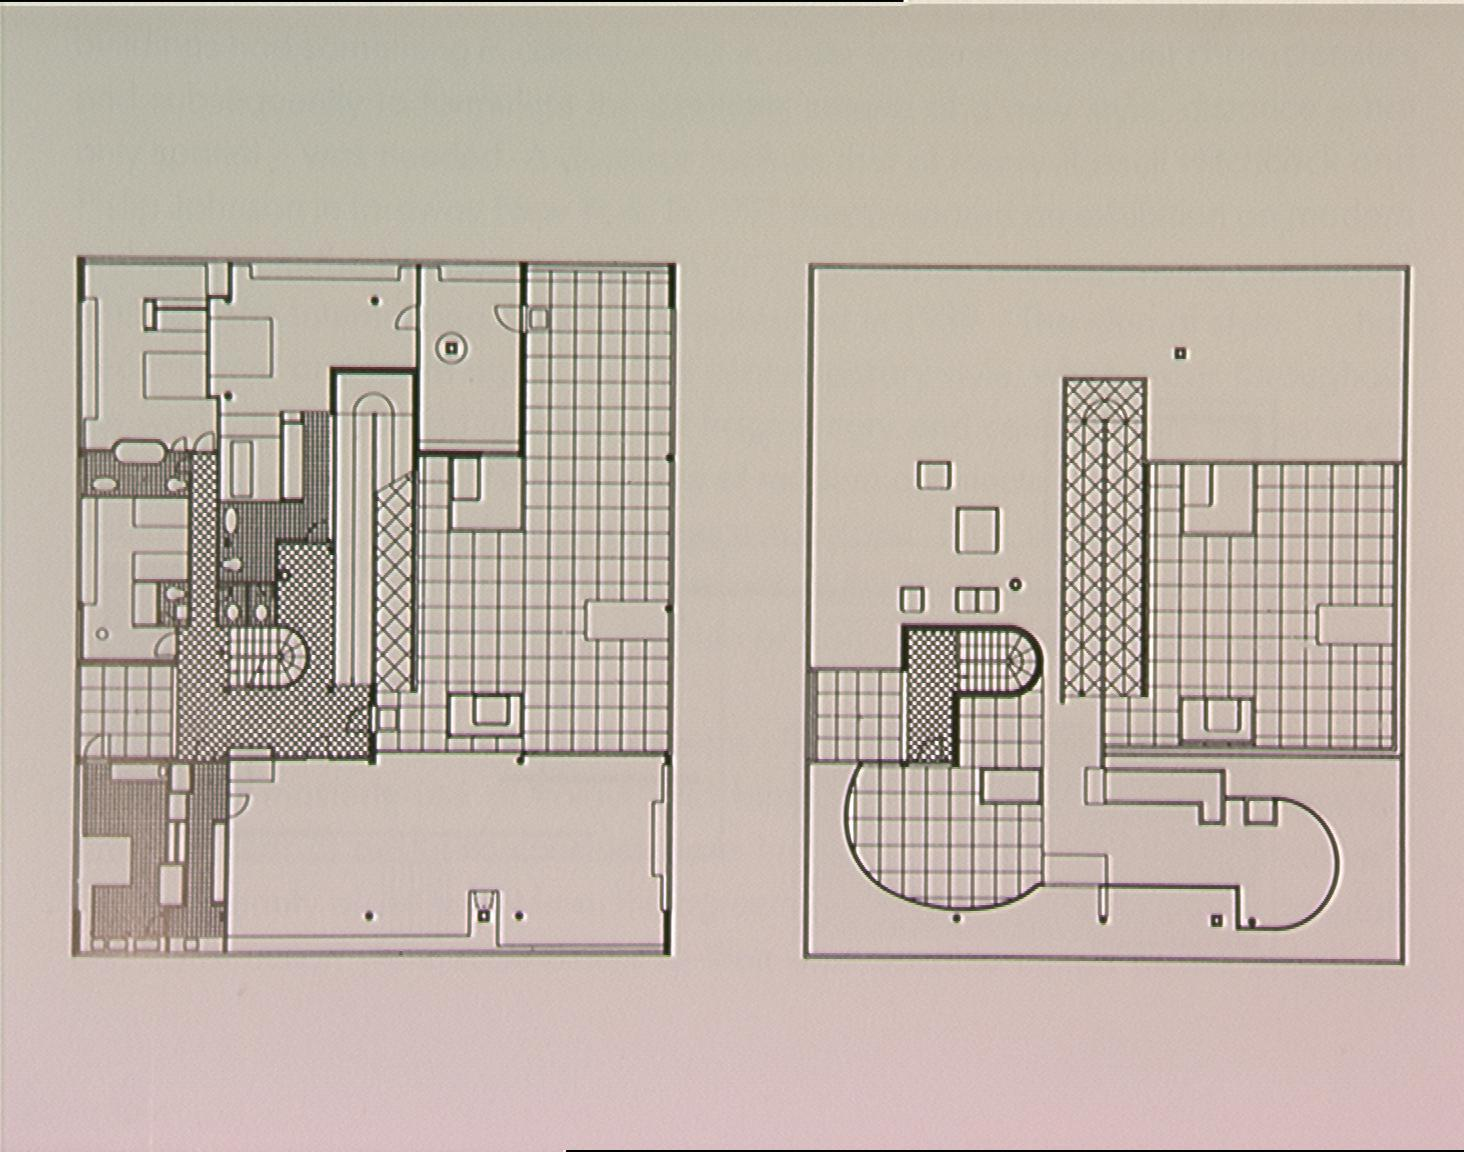 Displaying 20 gt  Images For - Villa Savoye Le Corbusier Floor Plan   Villa Savoye 2nd Floor Plan